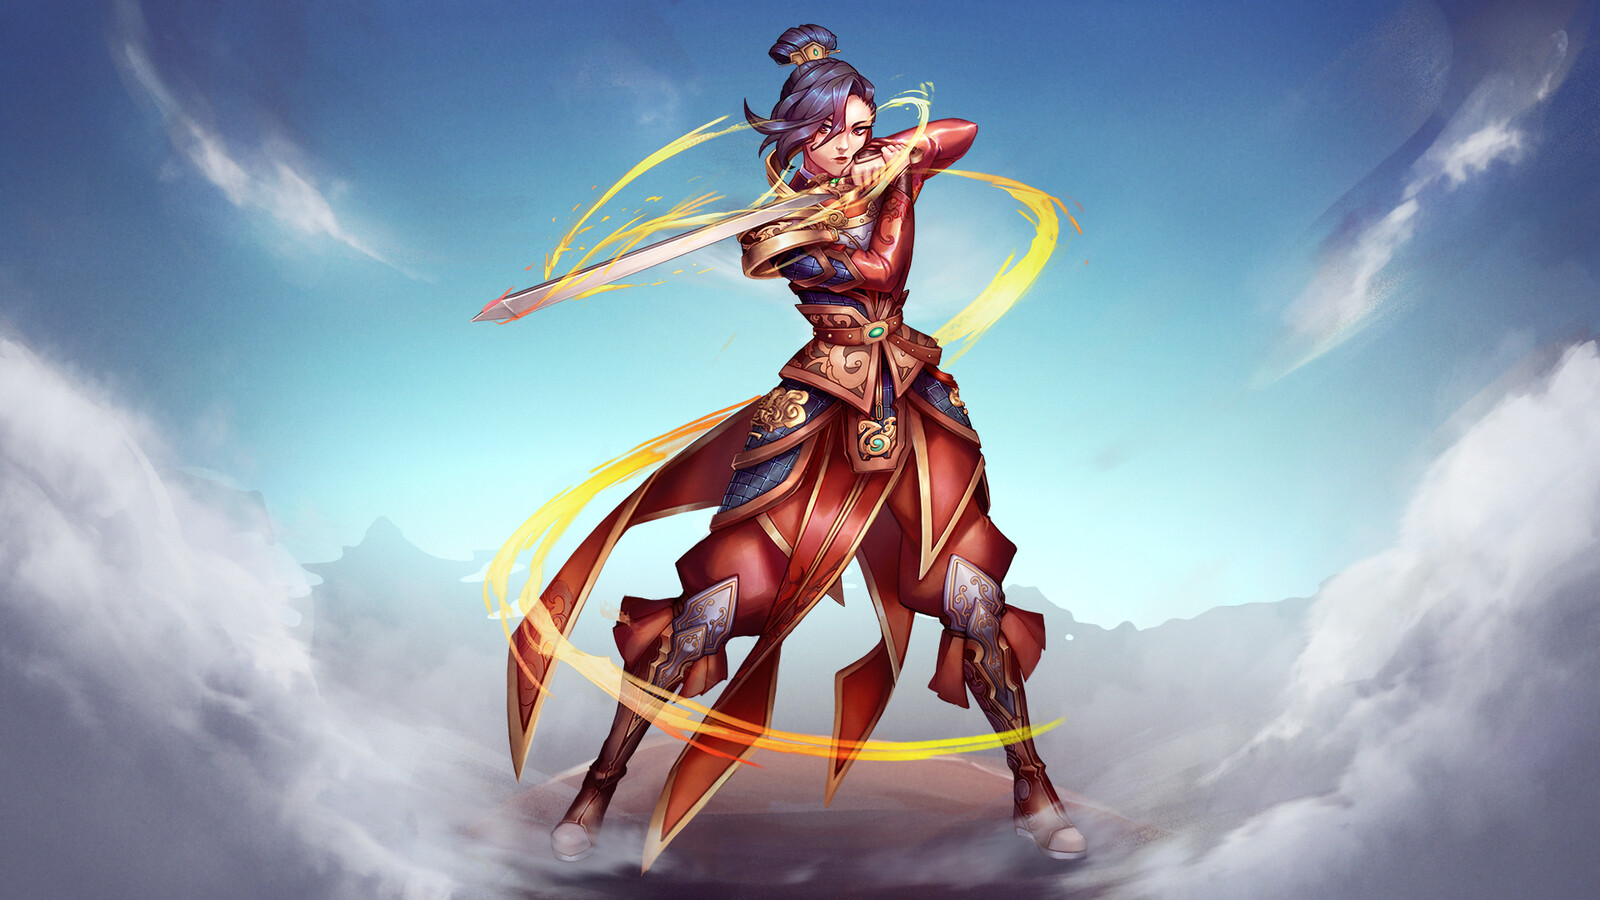 SMITE - Mulan Marketing Key Art